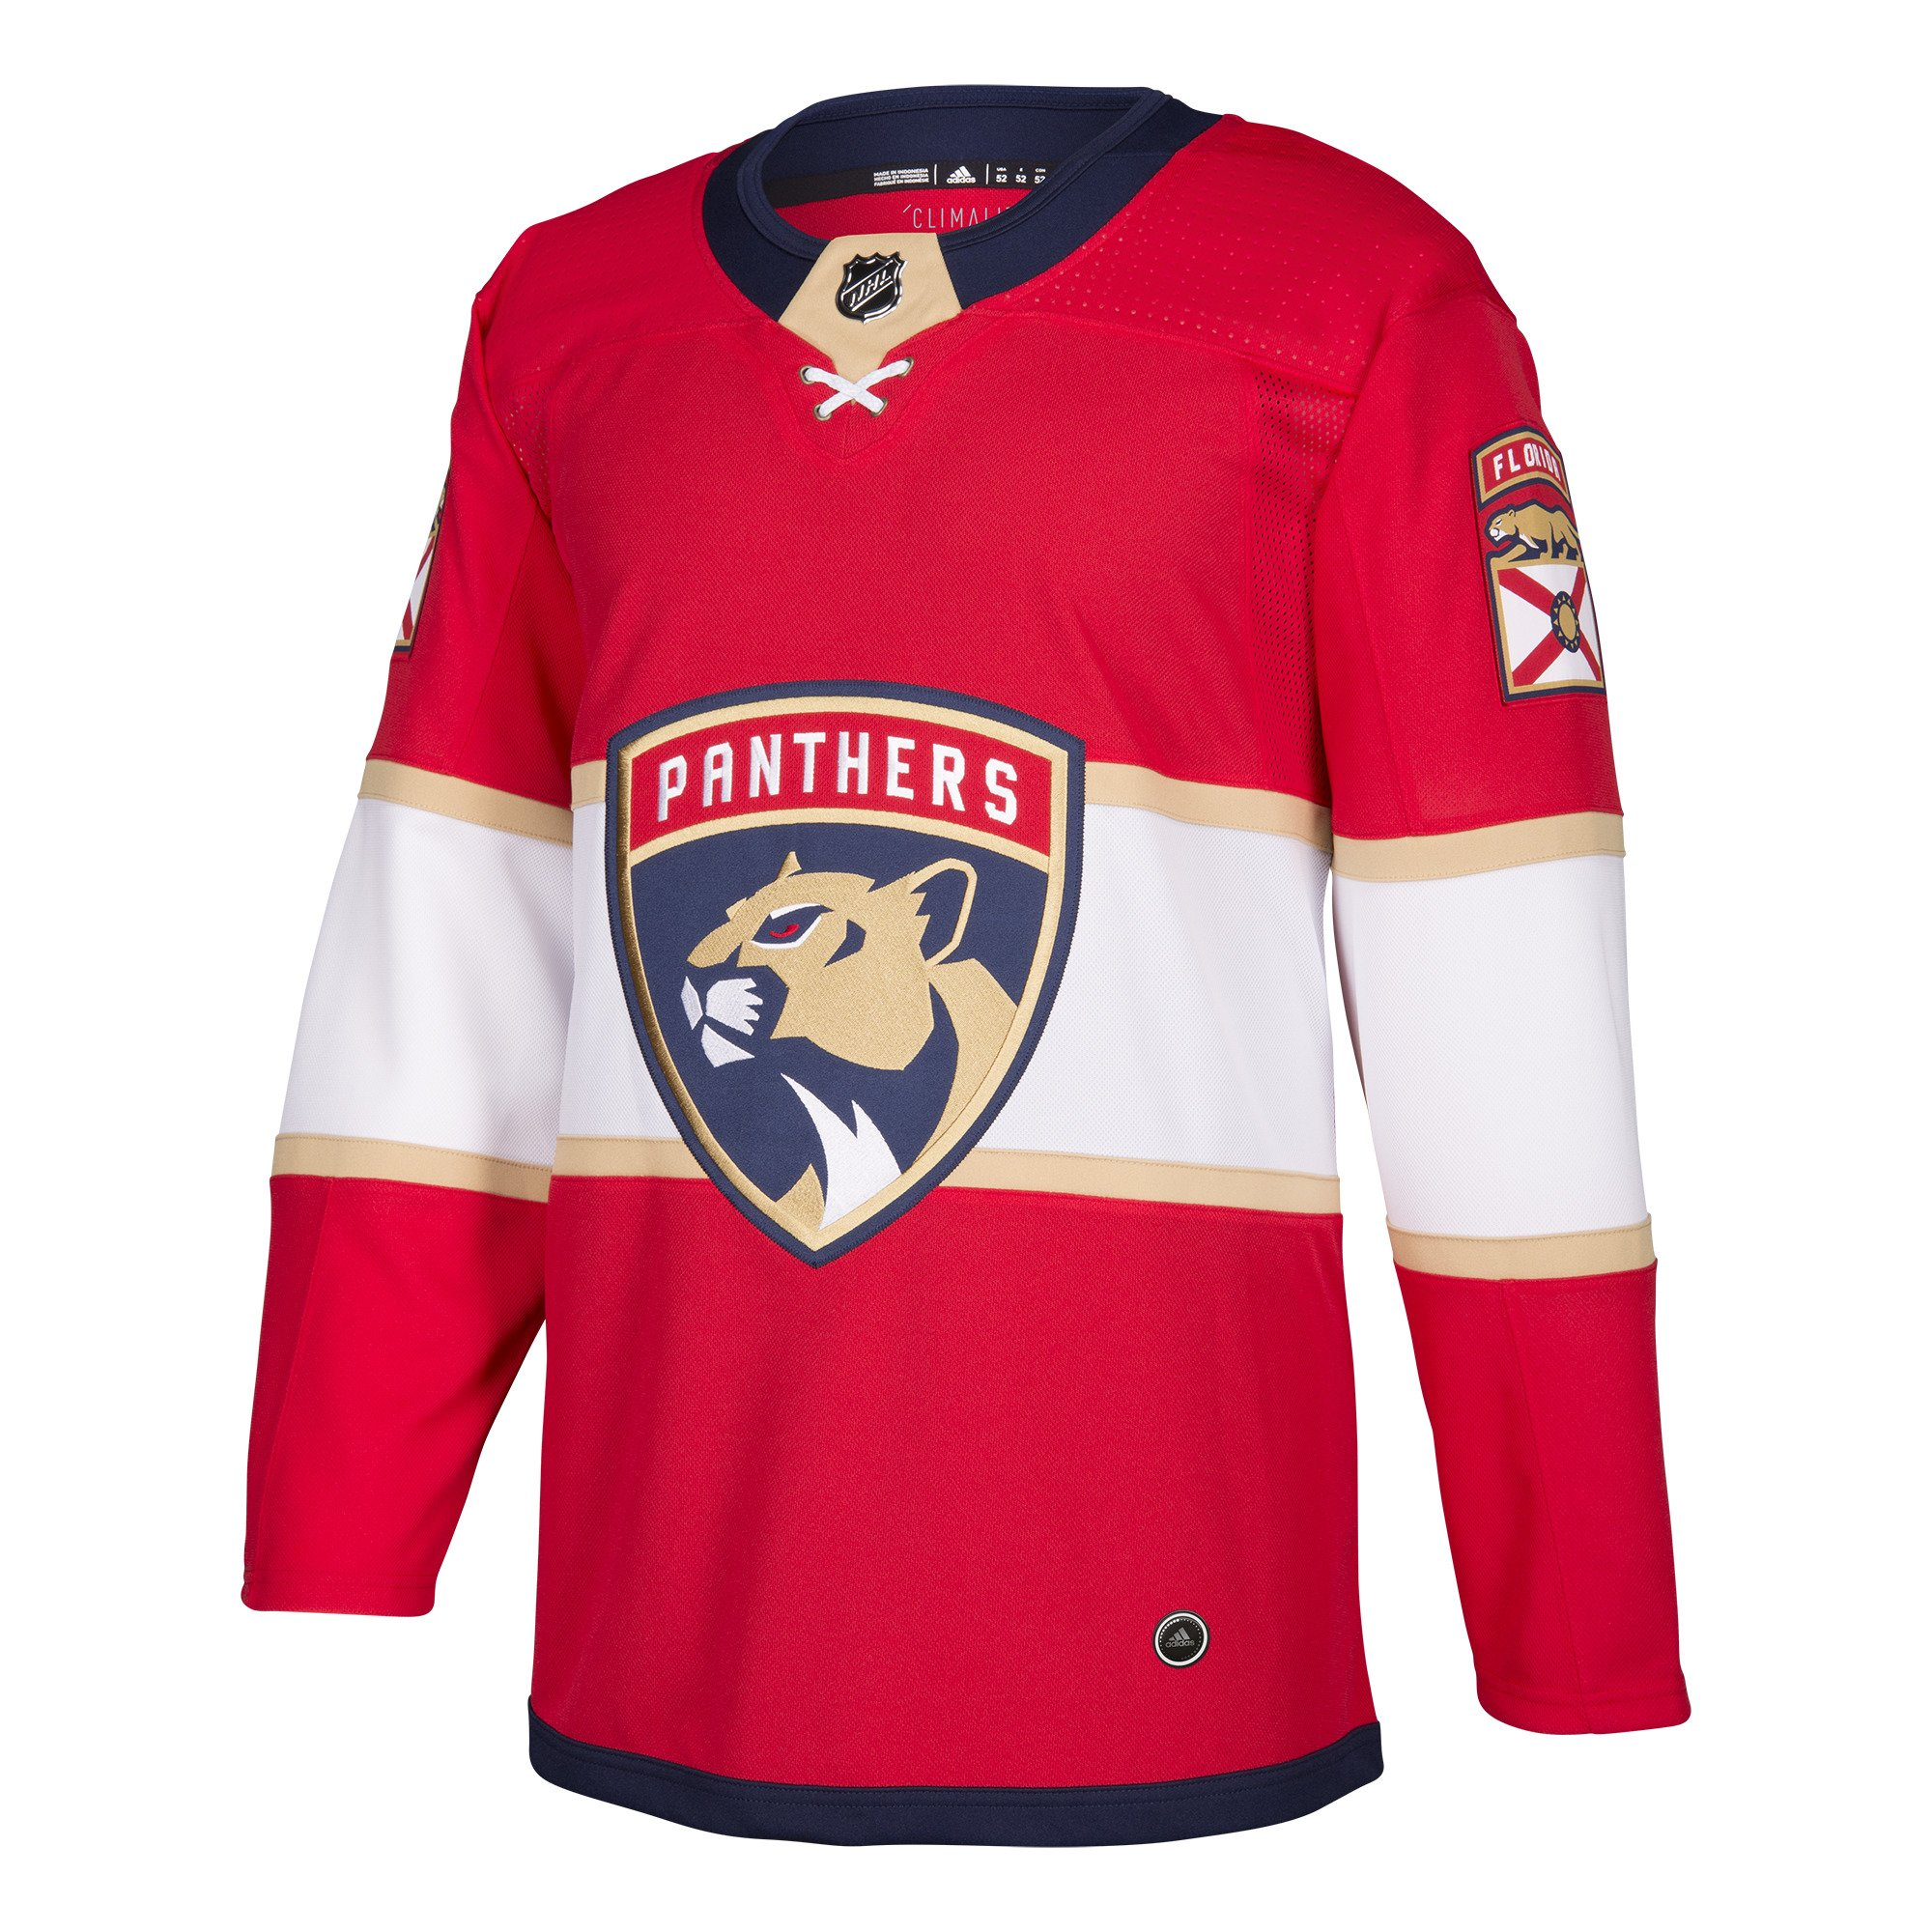 NHL Florida Panthers Fanatics Branded Away Breakaway Jersey Shirt Top Mens